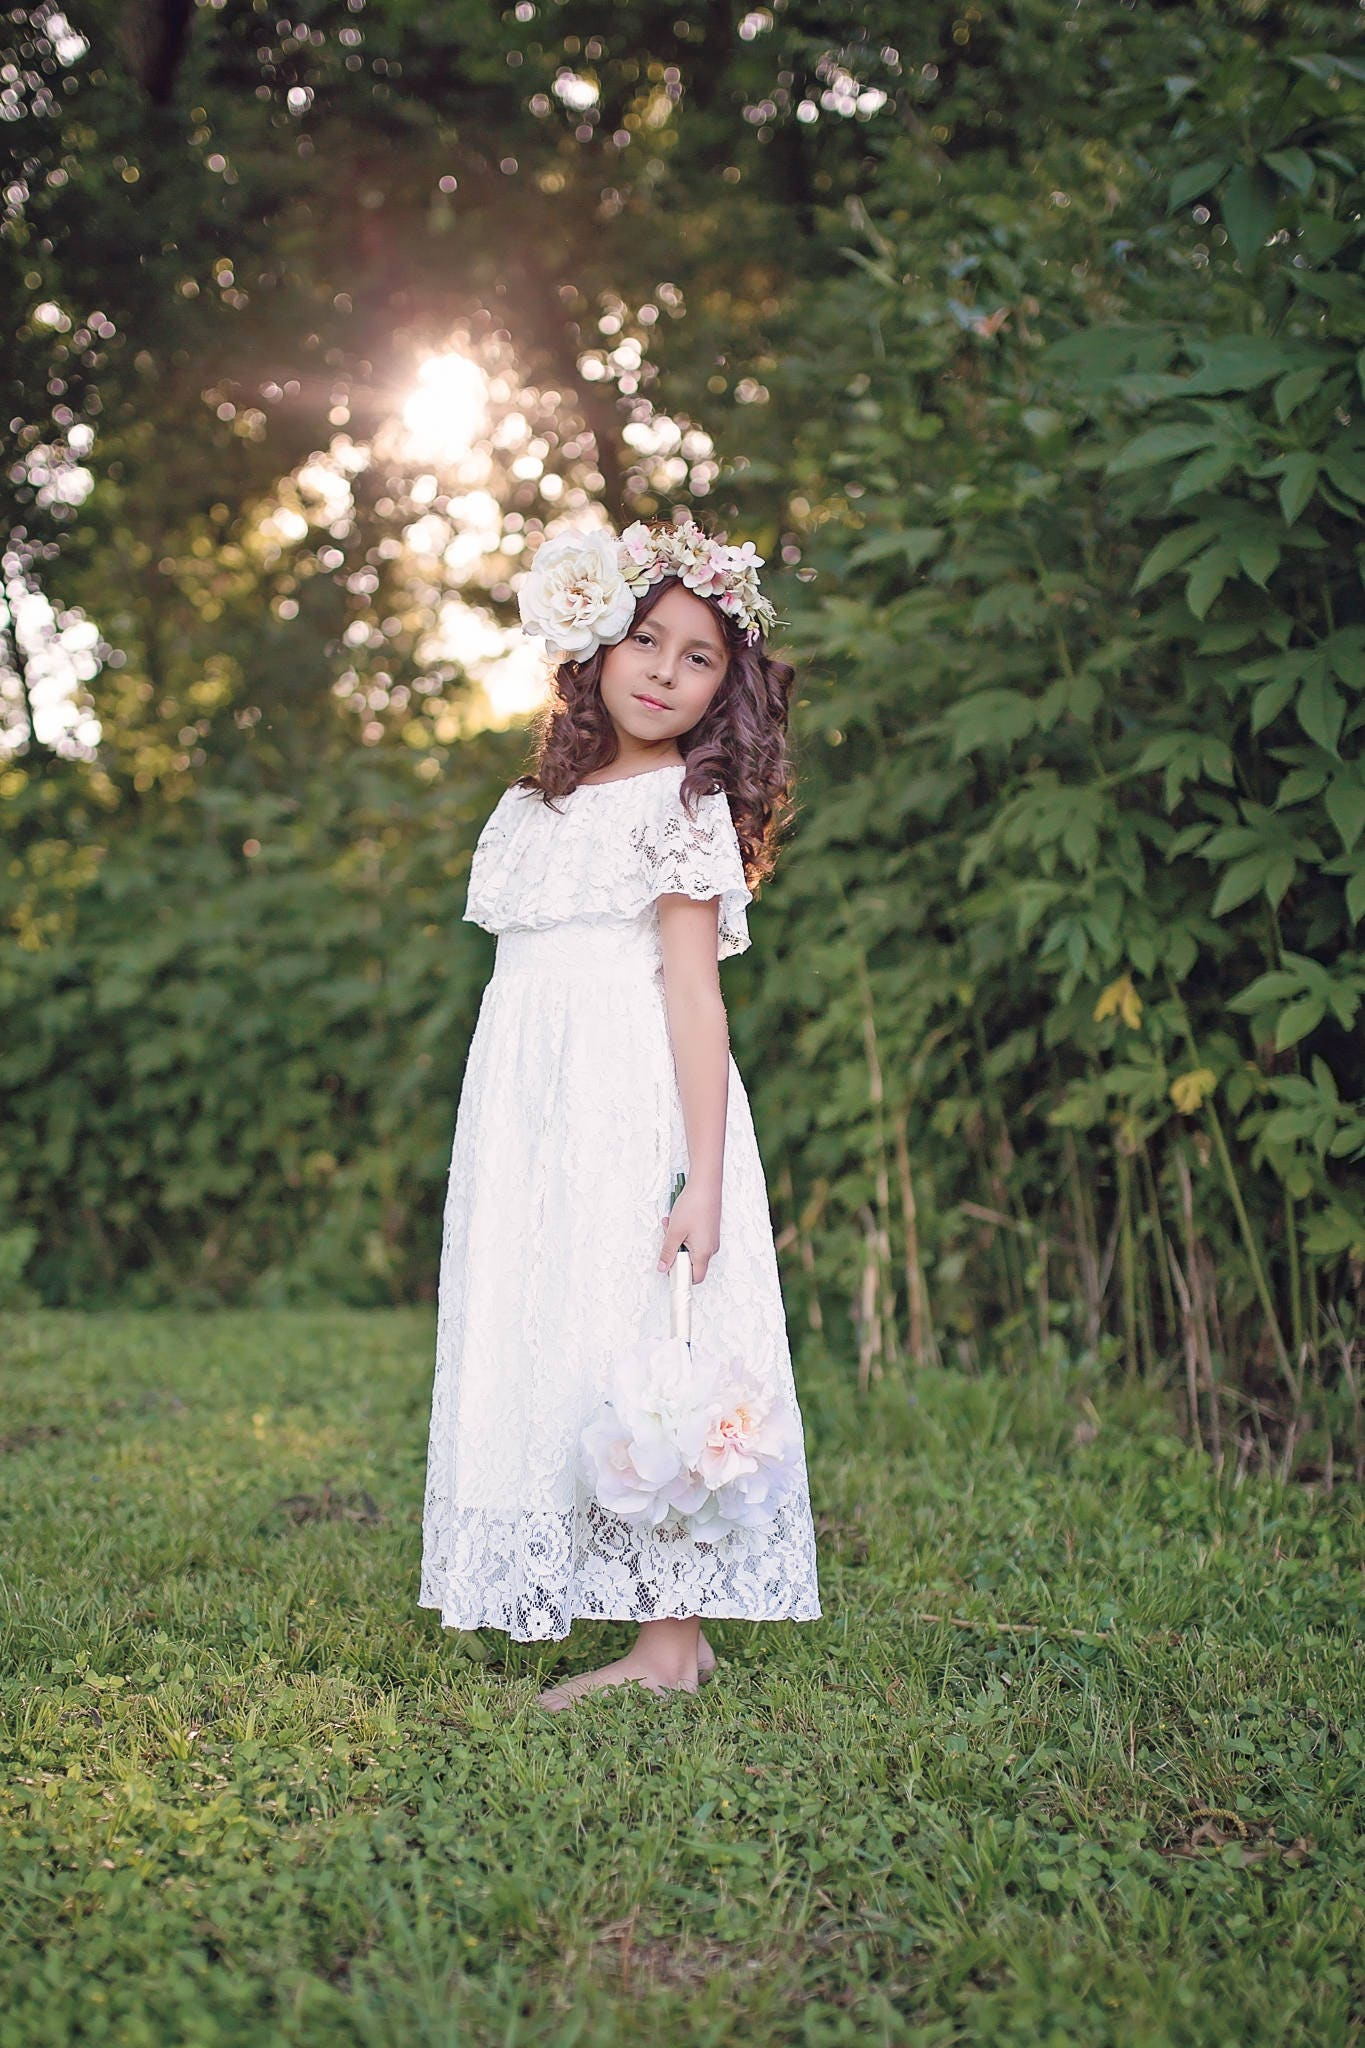 Girls Boho Lace Dresses Flower Girl Dresses First ...